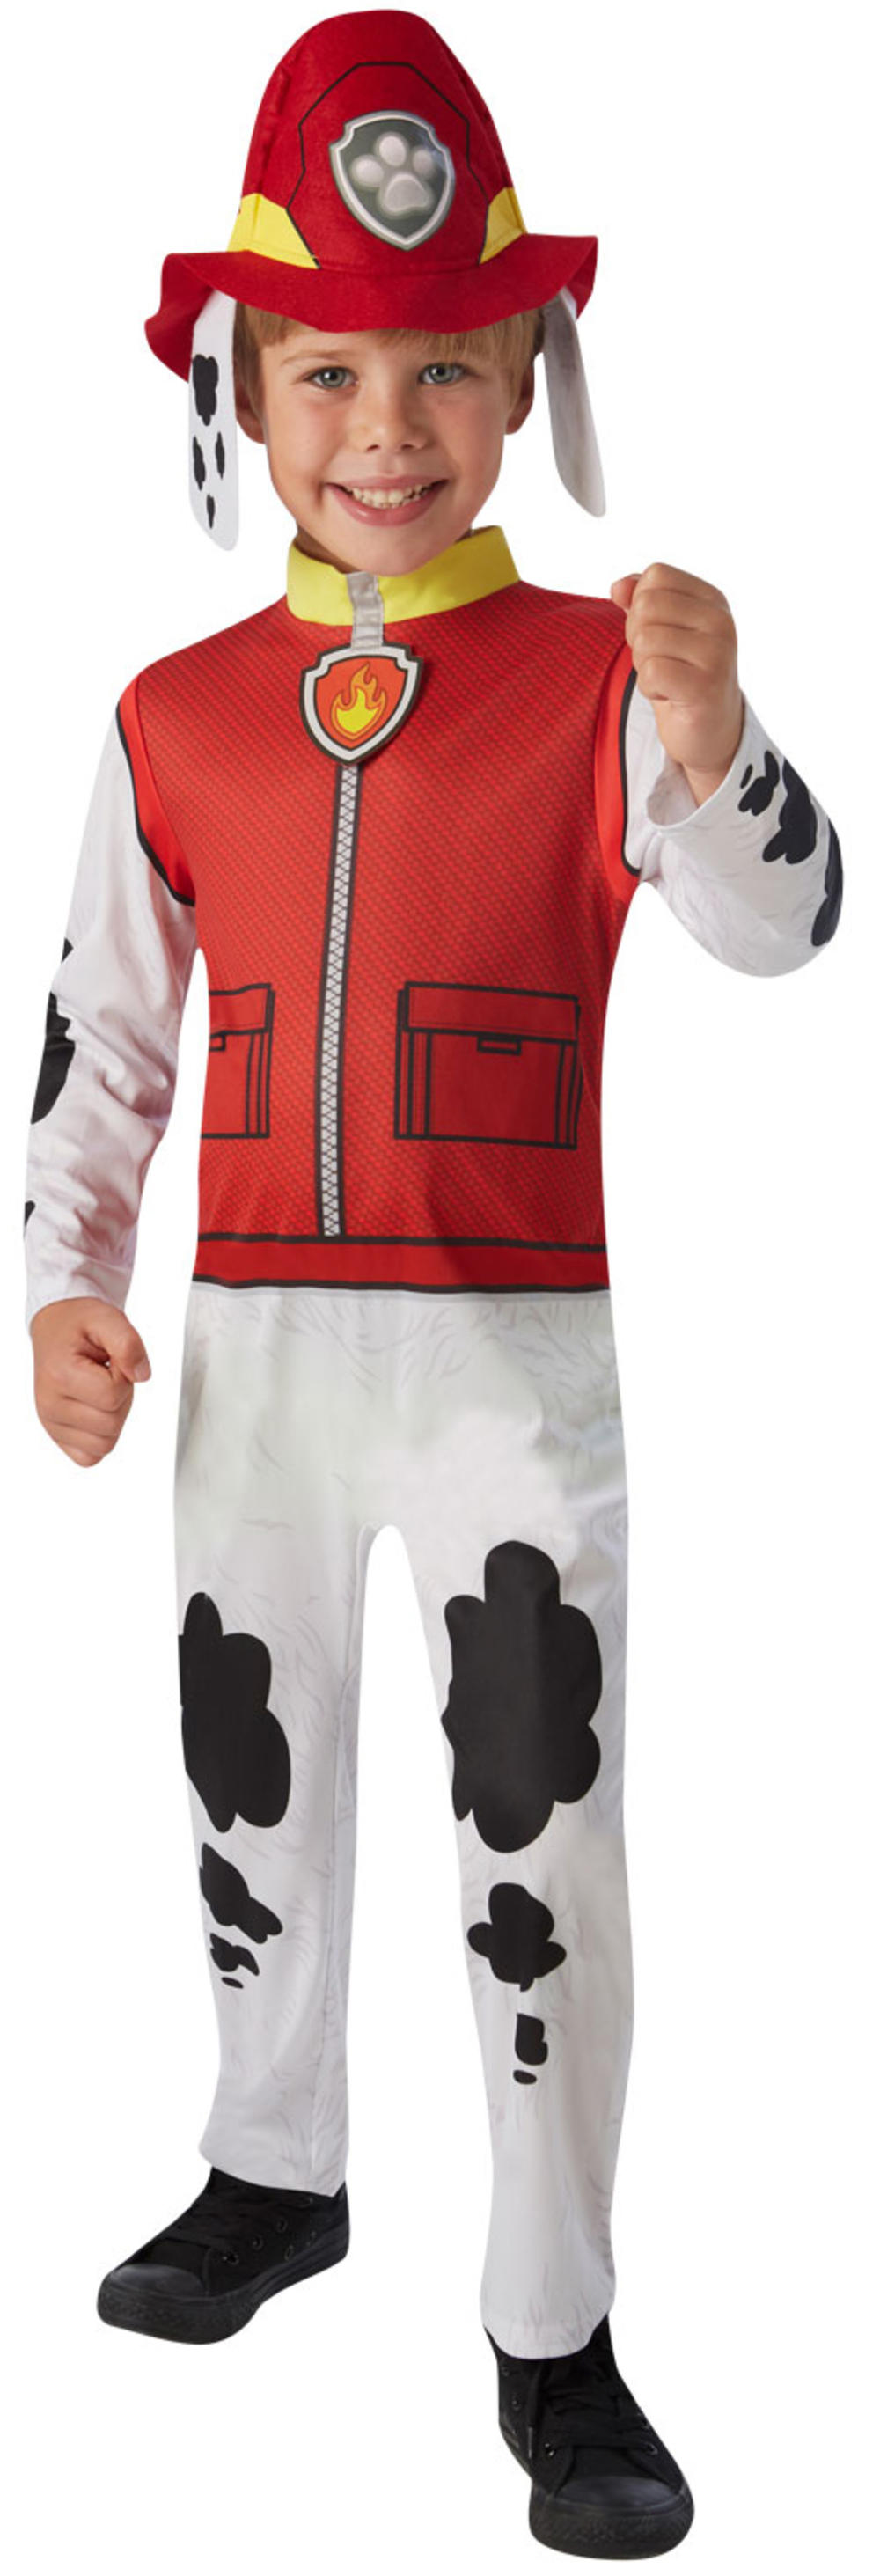 Paw Patrol Marshall Kids Fancy Dress Fire Fighter Book Day Dog Childrens Costume